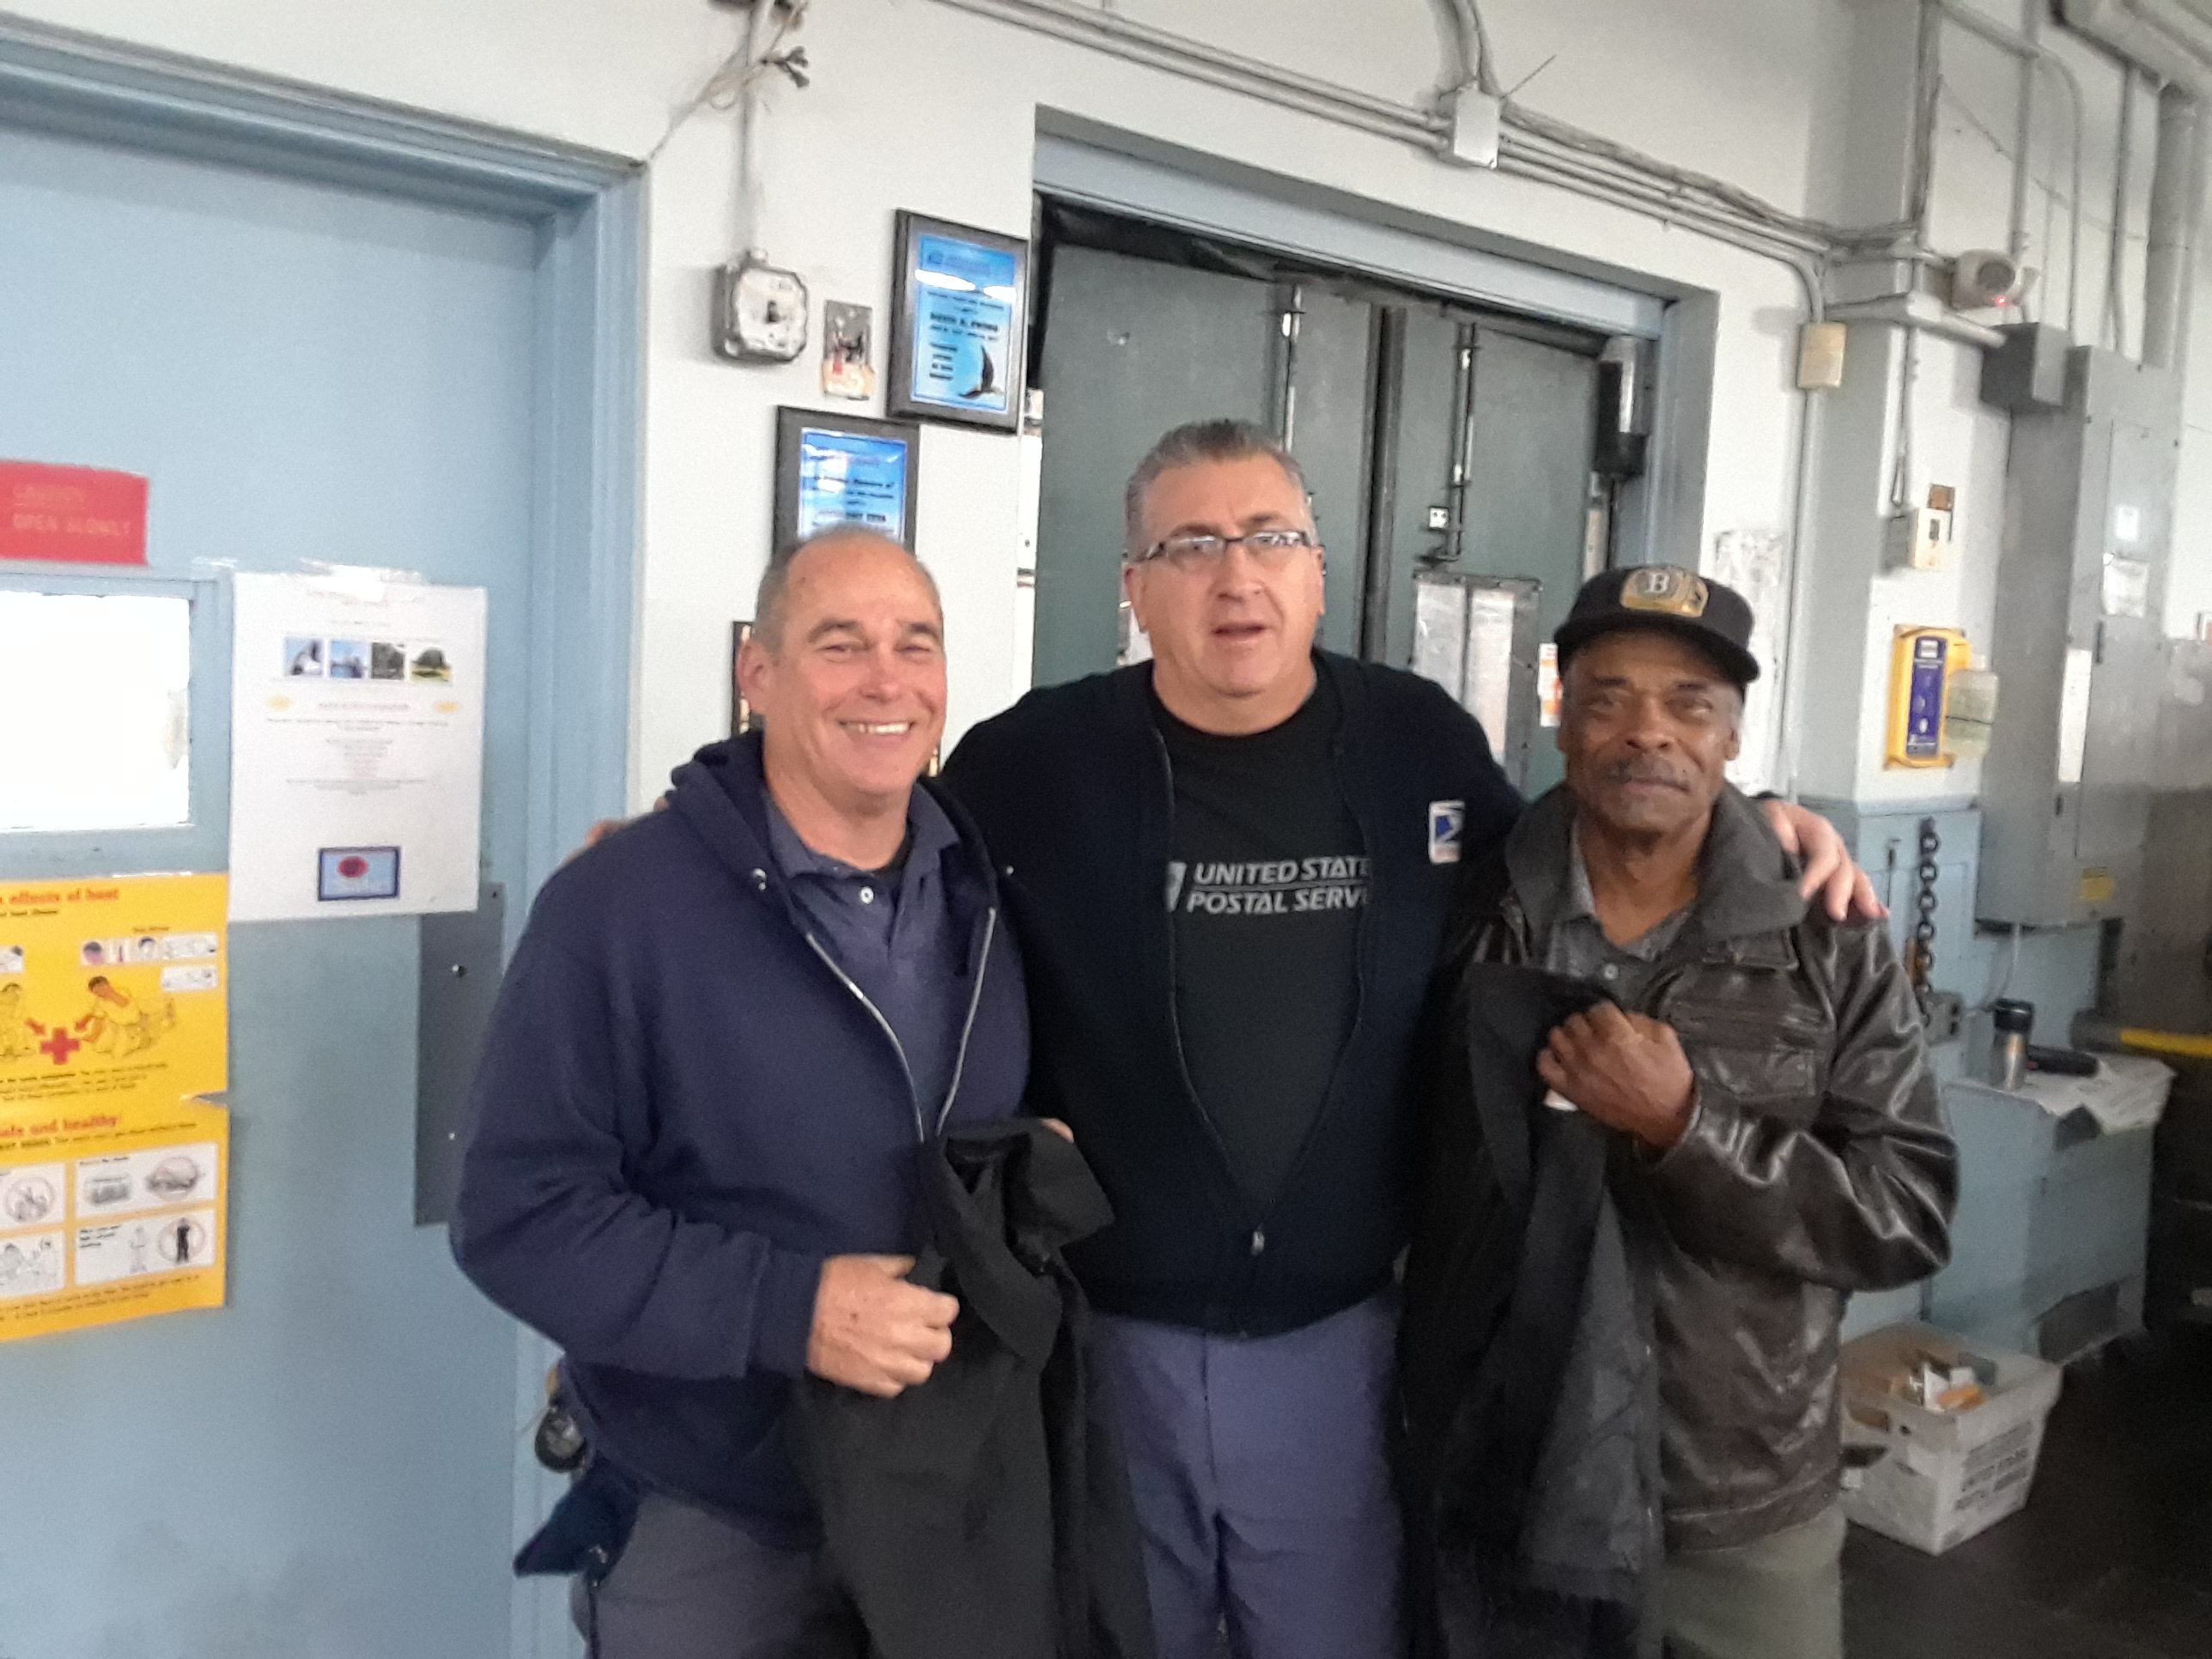 30-plus year Members Jeff Corbett (l) and Steve Bowden pose with Medford Streward Steve White on their last day, October 31st.